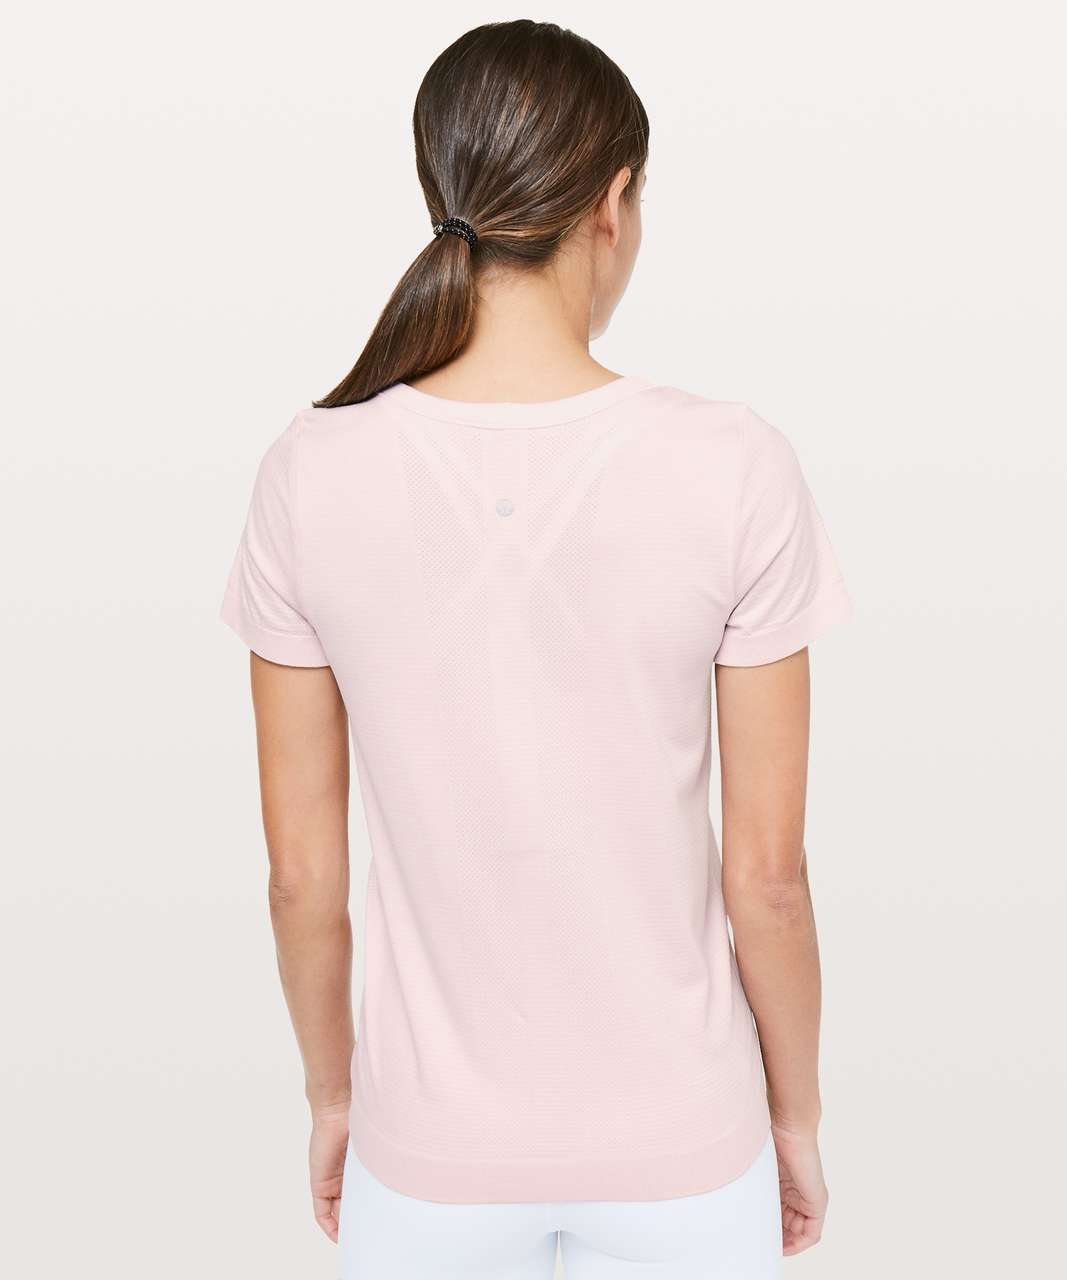 Lululemon Swiftly Tech Short Sleeve (Breeze) *Relaxed Fit - Blissful Pink / Blissful Pink